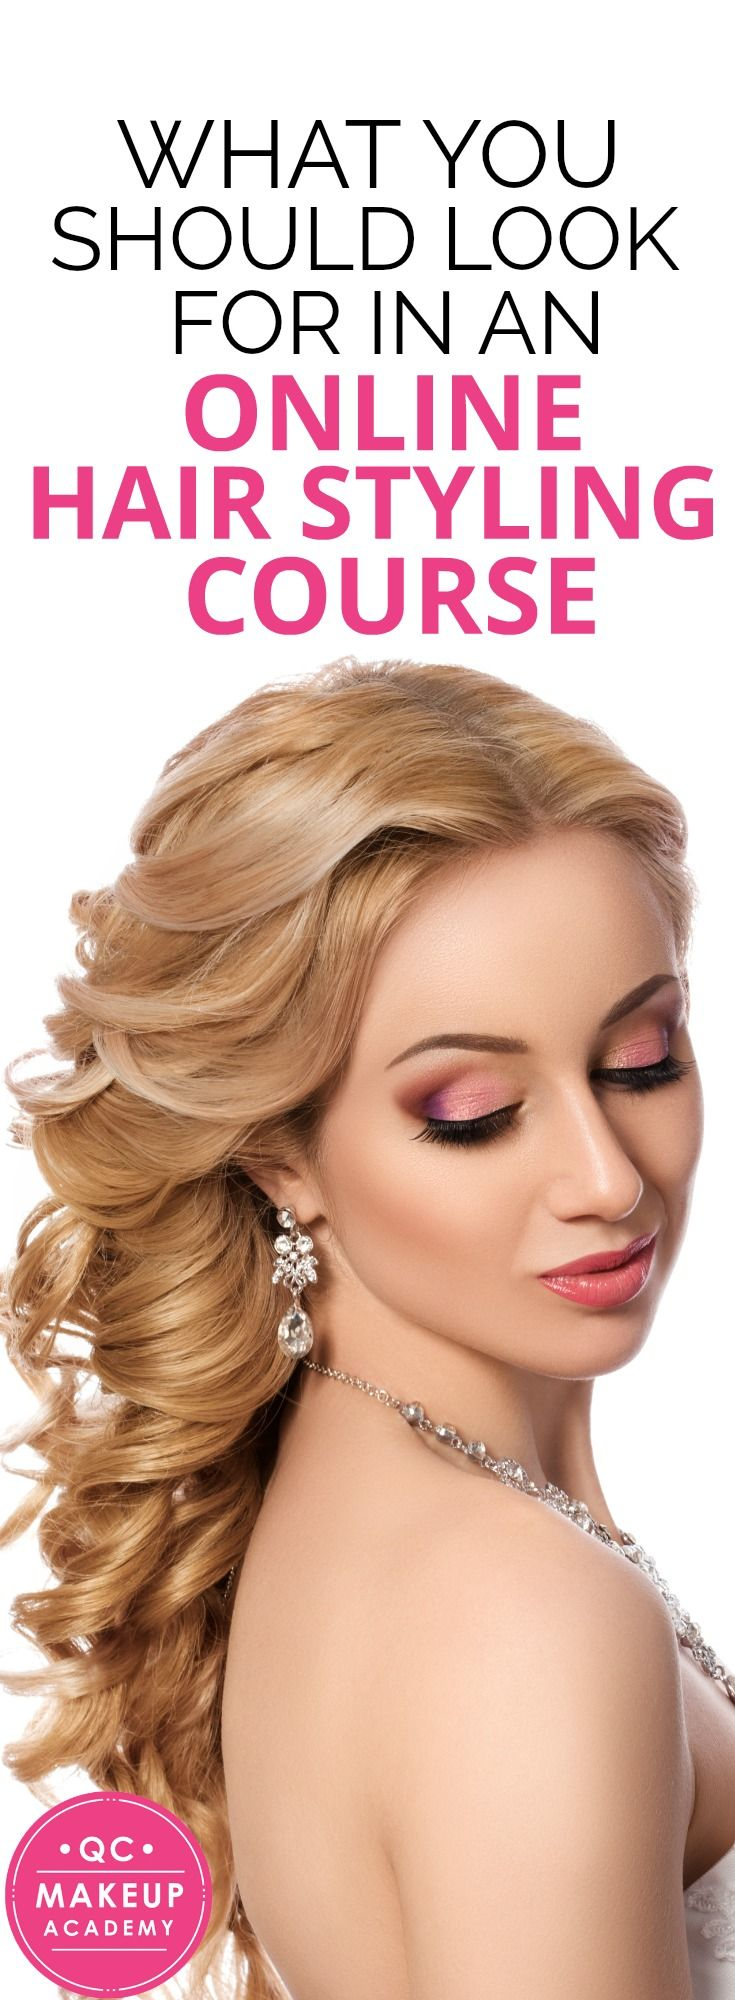 Online Hair Styling Course The 25 Best Online Makeup Courses Ideas On Pinterest  Online .